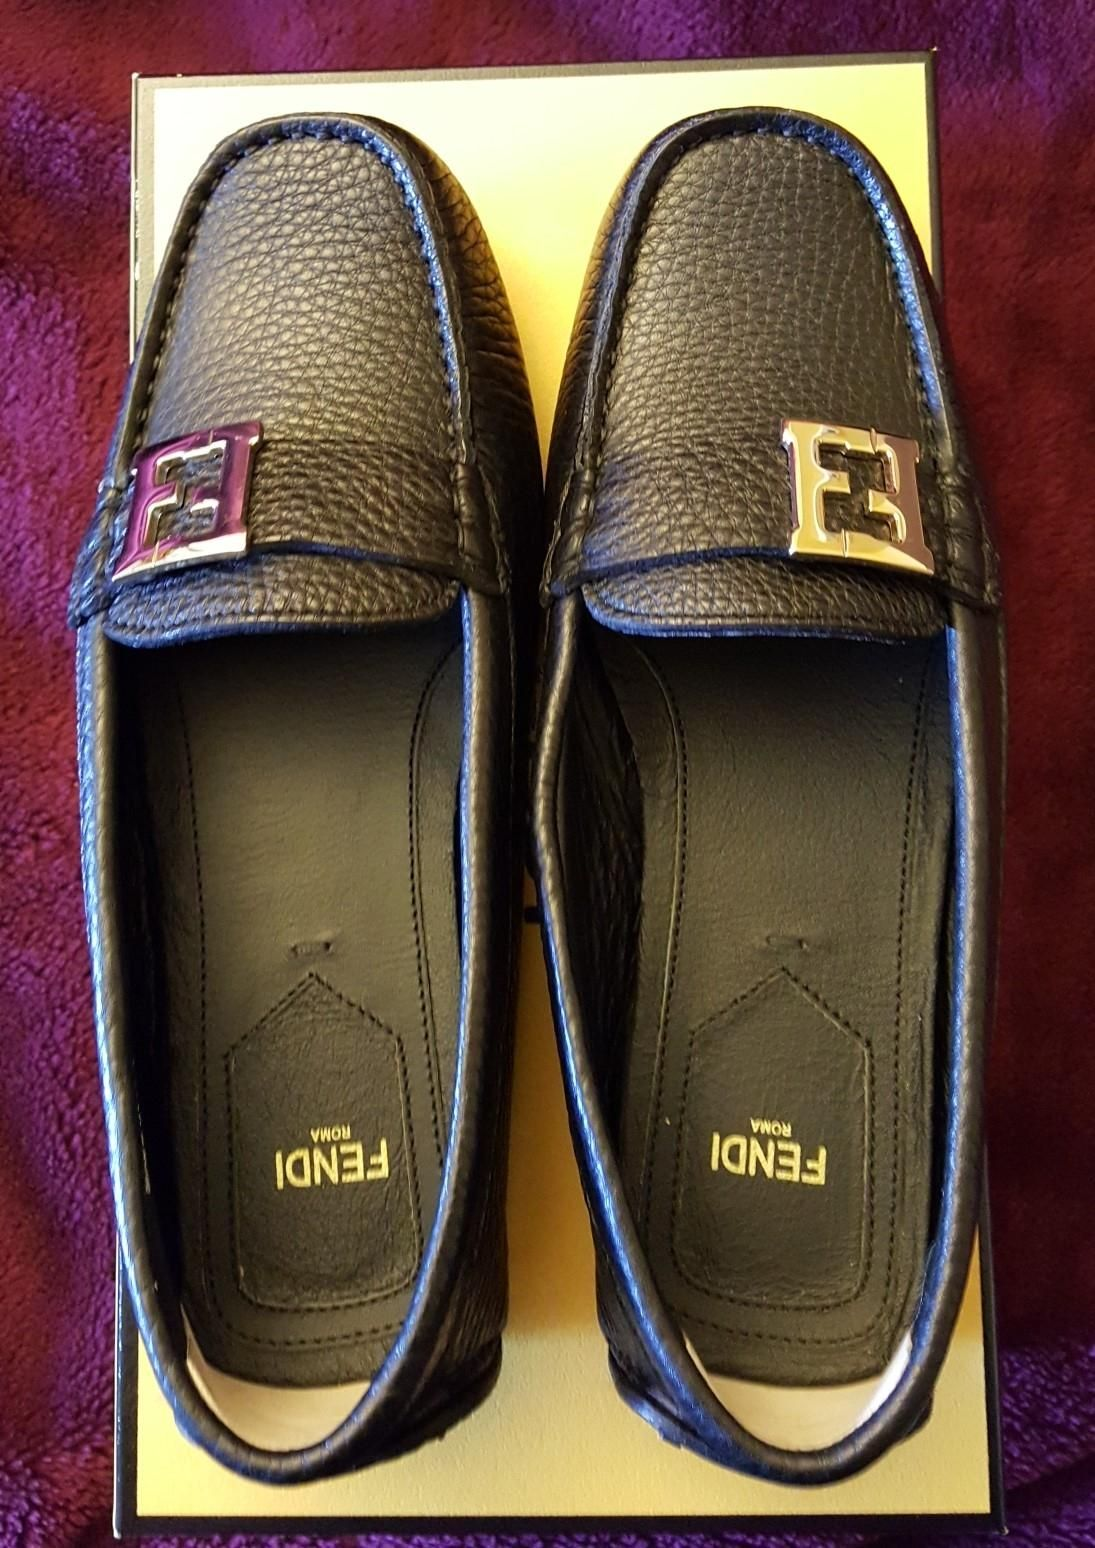 3a00a34035d2 Get the must-have flats of this season! These Fendi Black College Drivers  Moccasins Size 7 Flats are a top 10 member favorite on Tradesy.